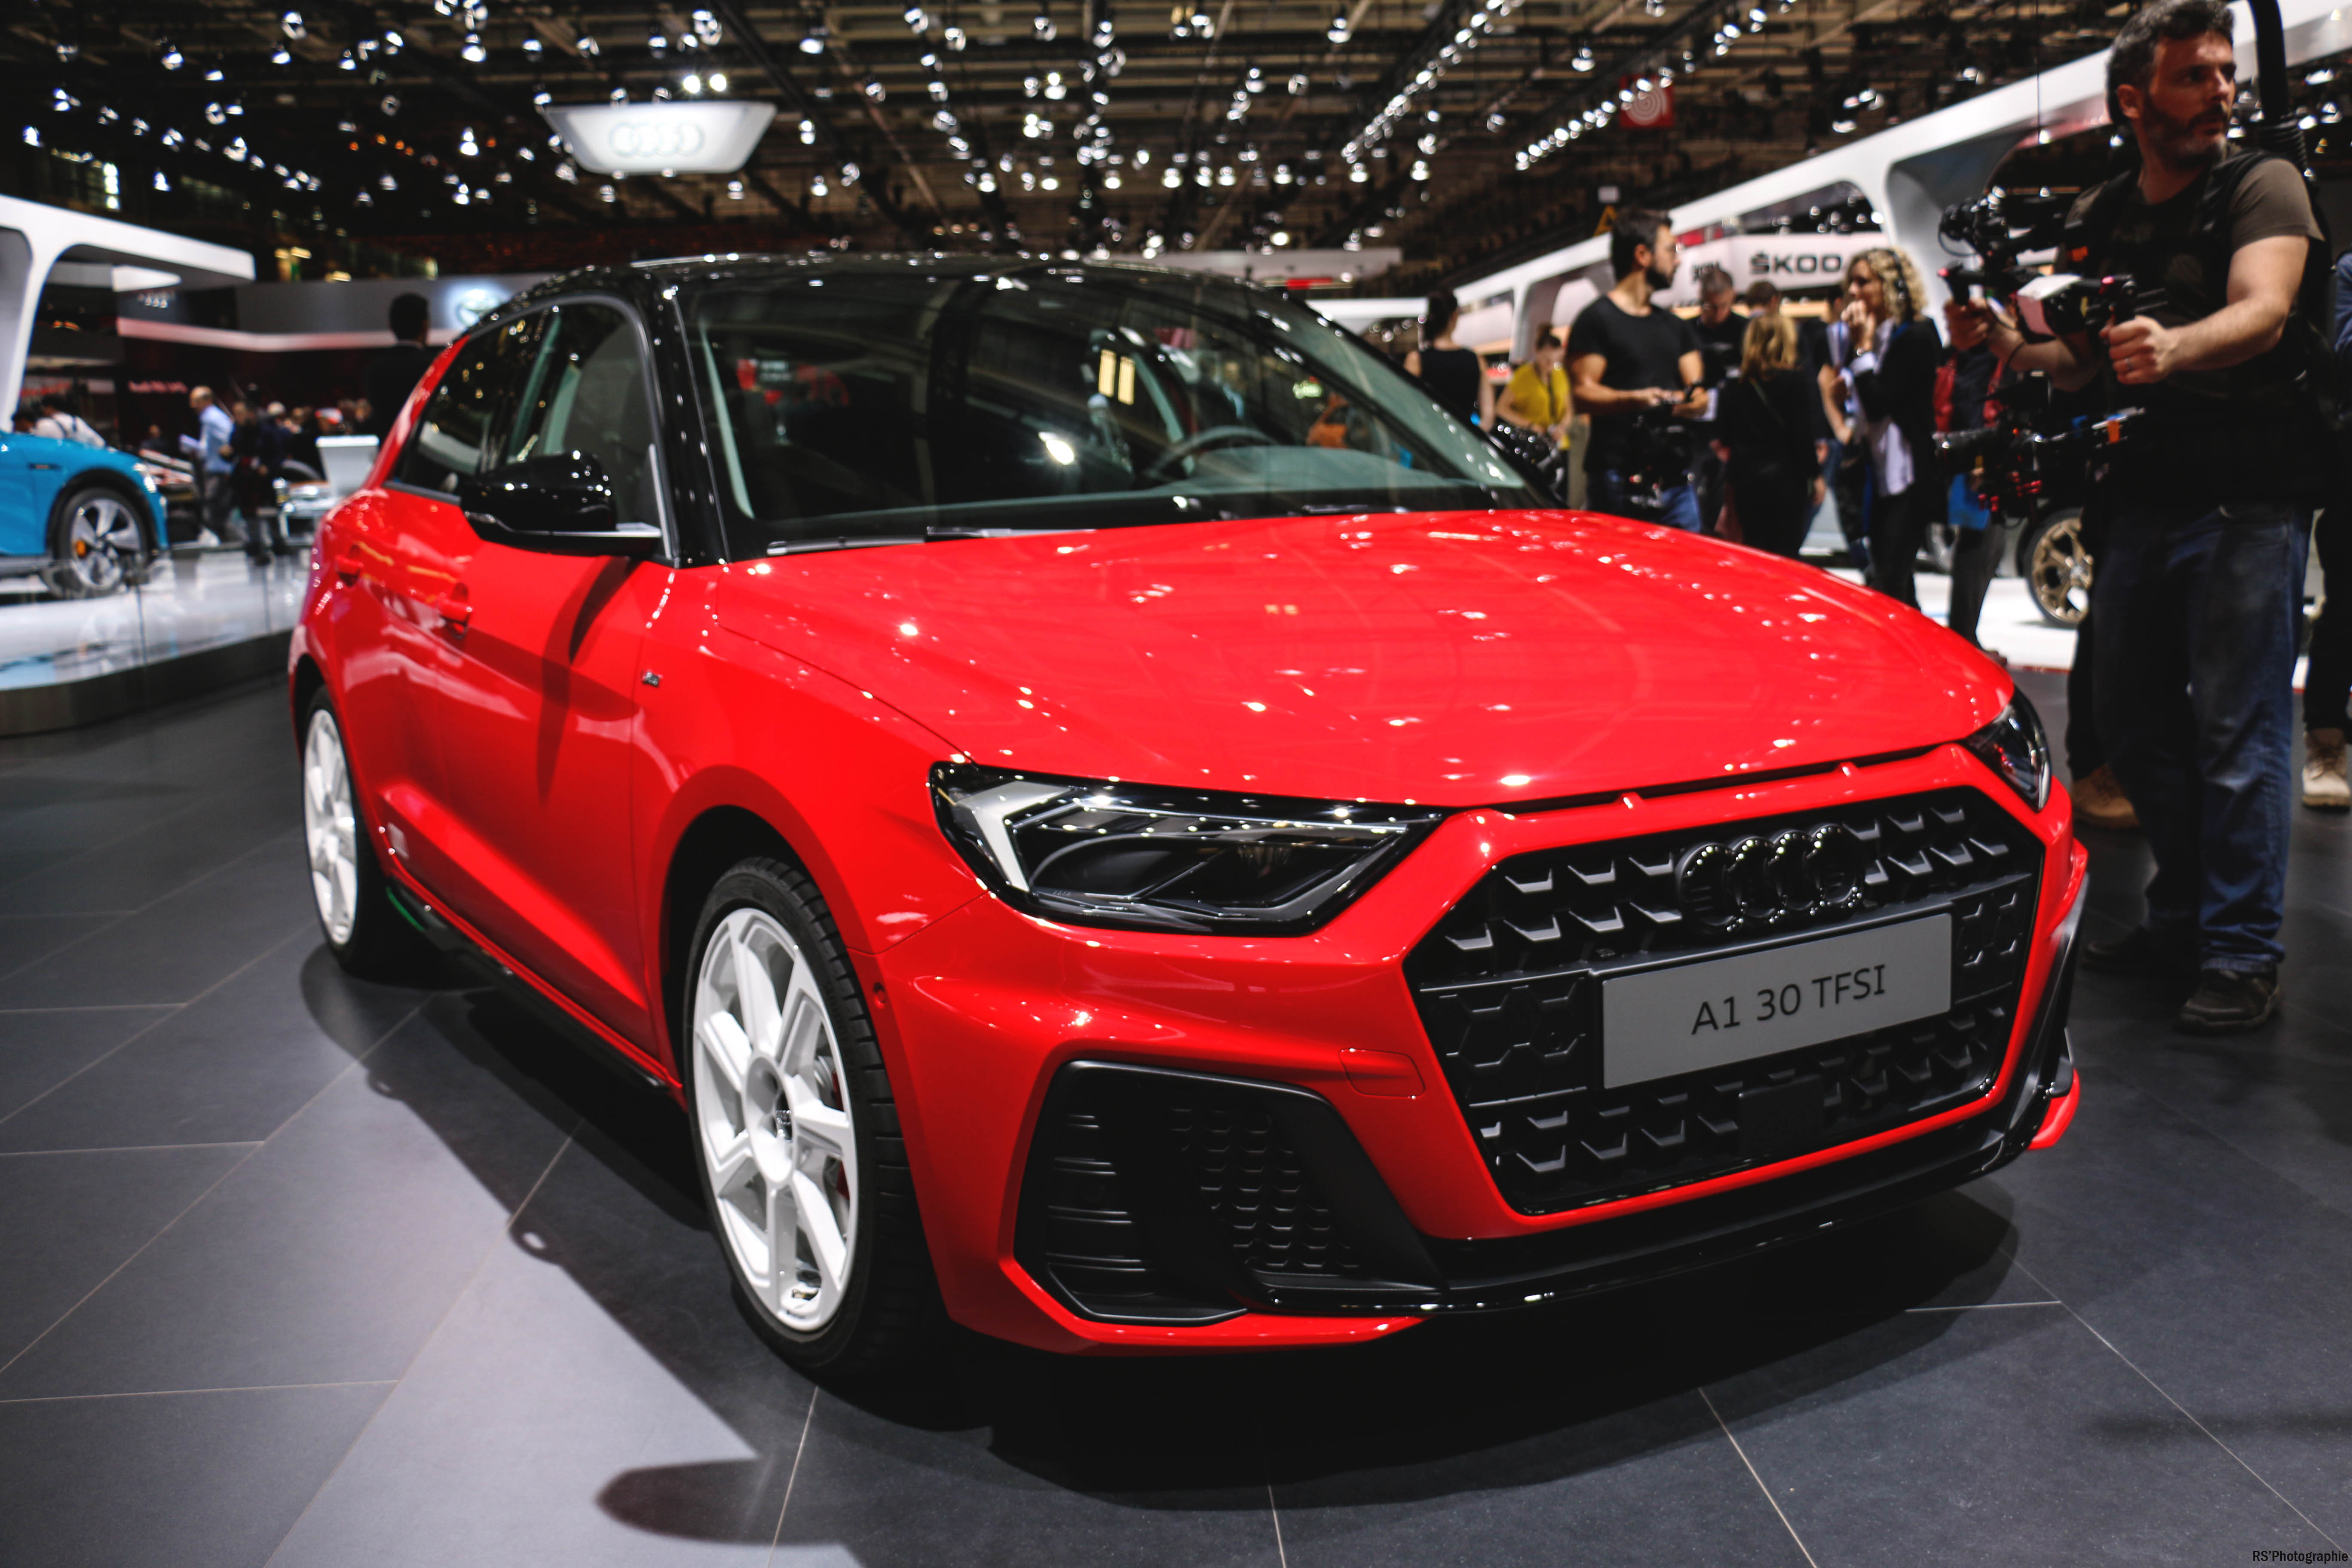 Audi A1 - front - Paris Motor Show - 2018 - Mondial Auto - photo by Arnaud Demasier RS Photographie